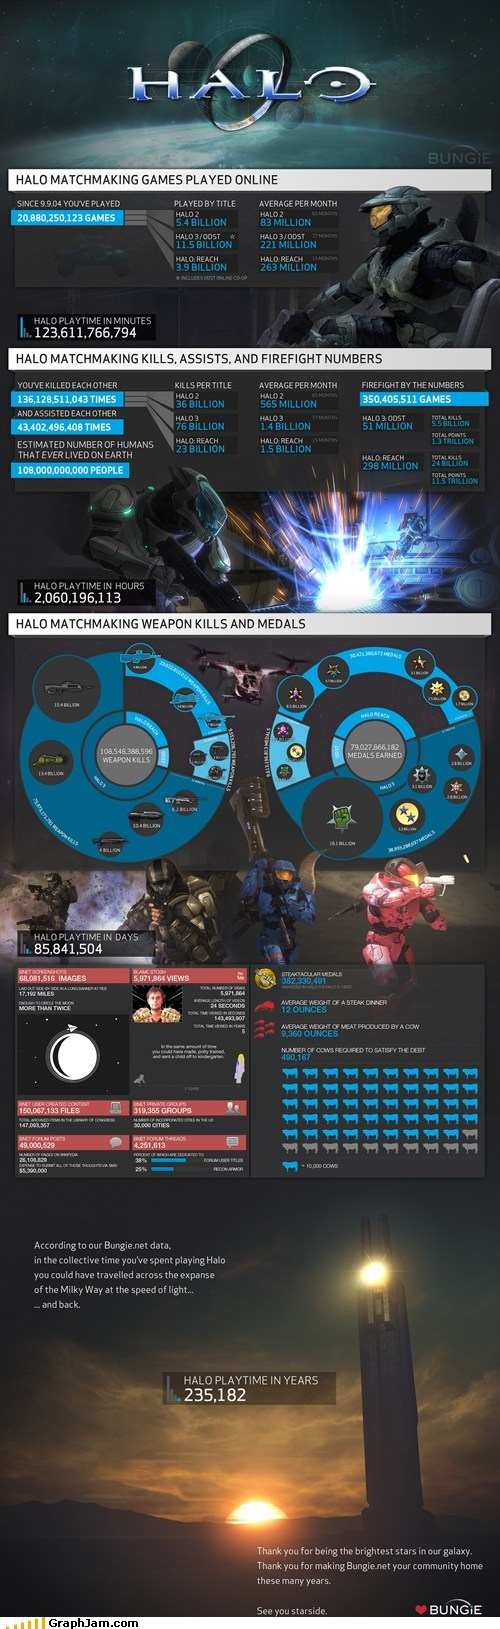 best of week frag halo infographic kills online video games xbox